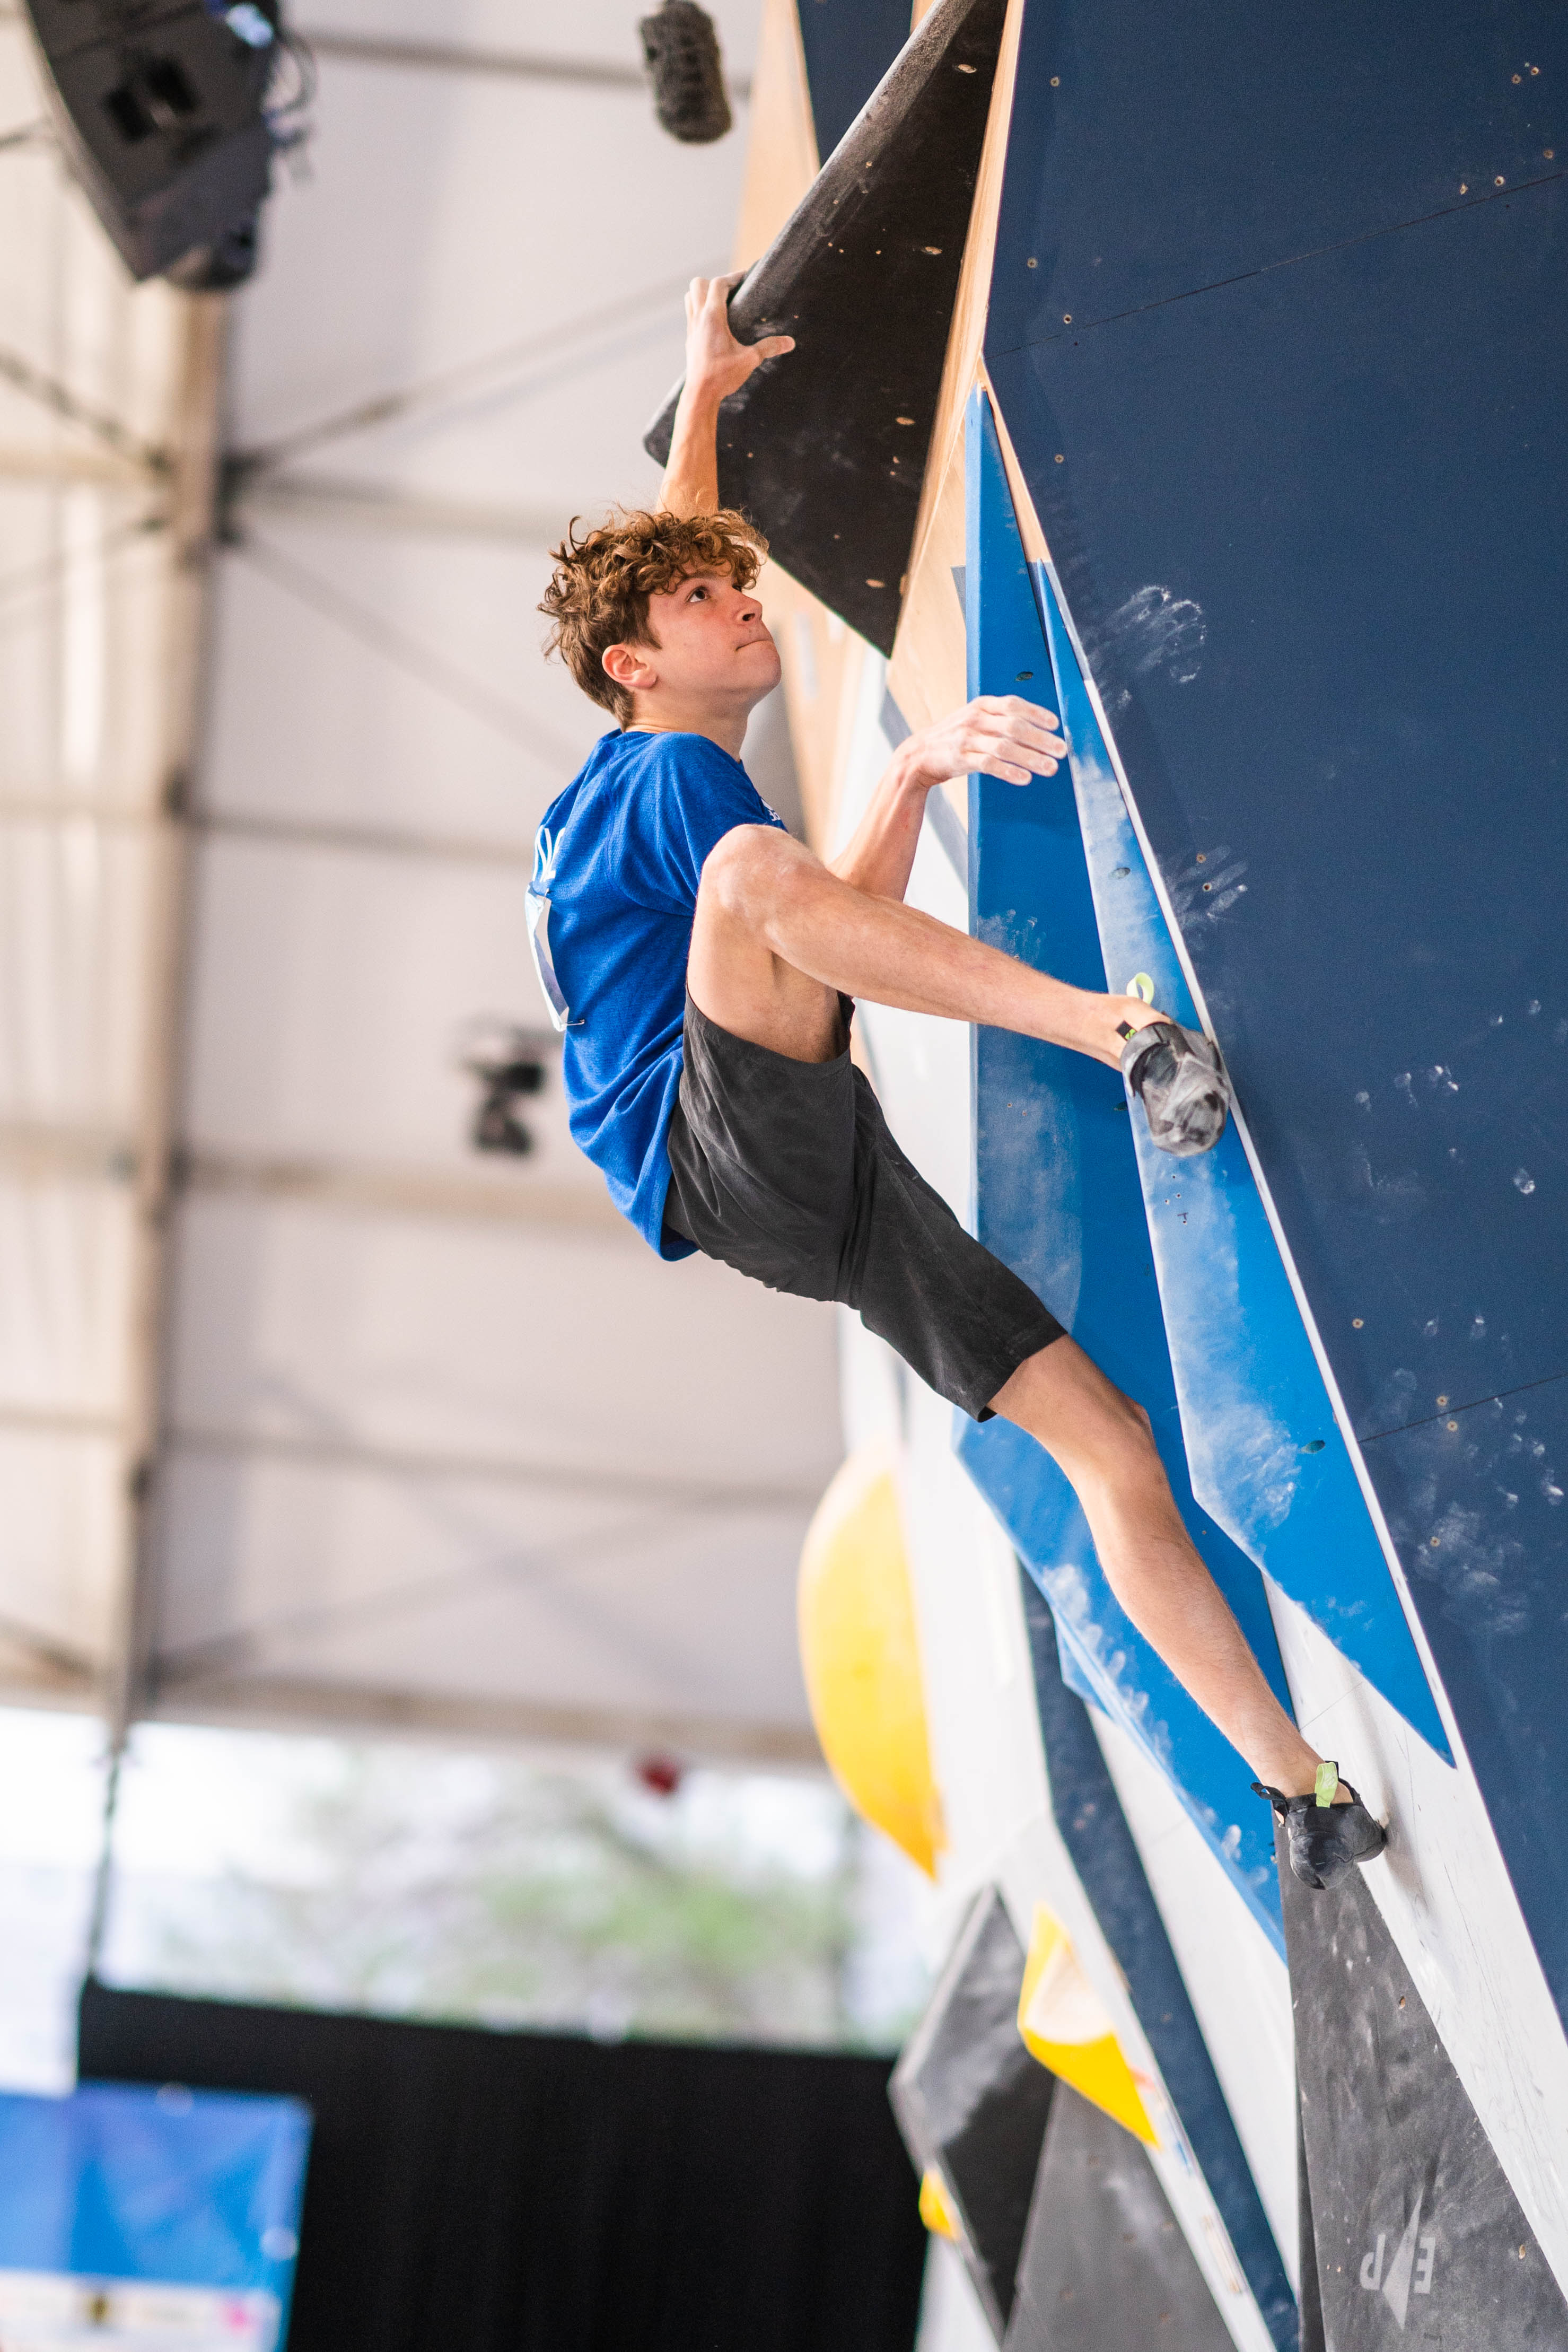 210817 IFSC News IFSC Youth World Championships to Commence in Voronezh Russia this Weekend